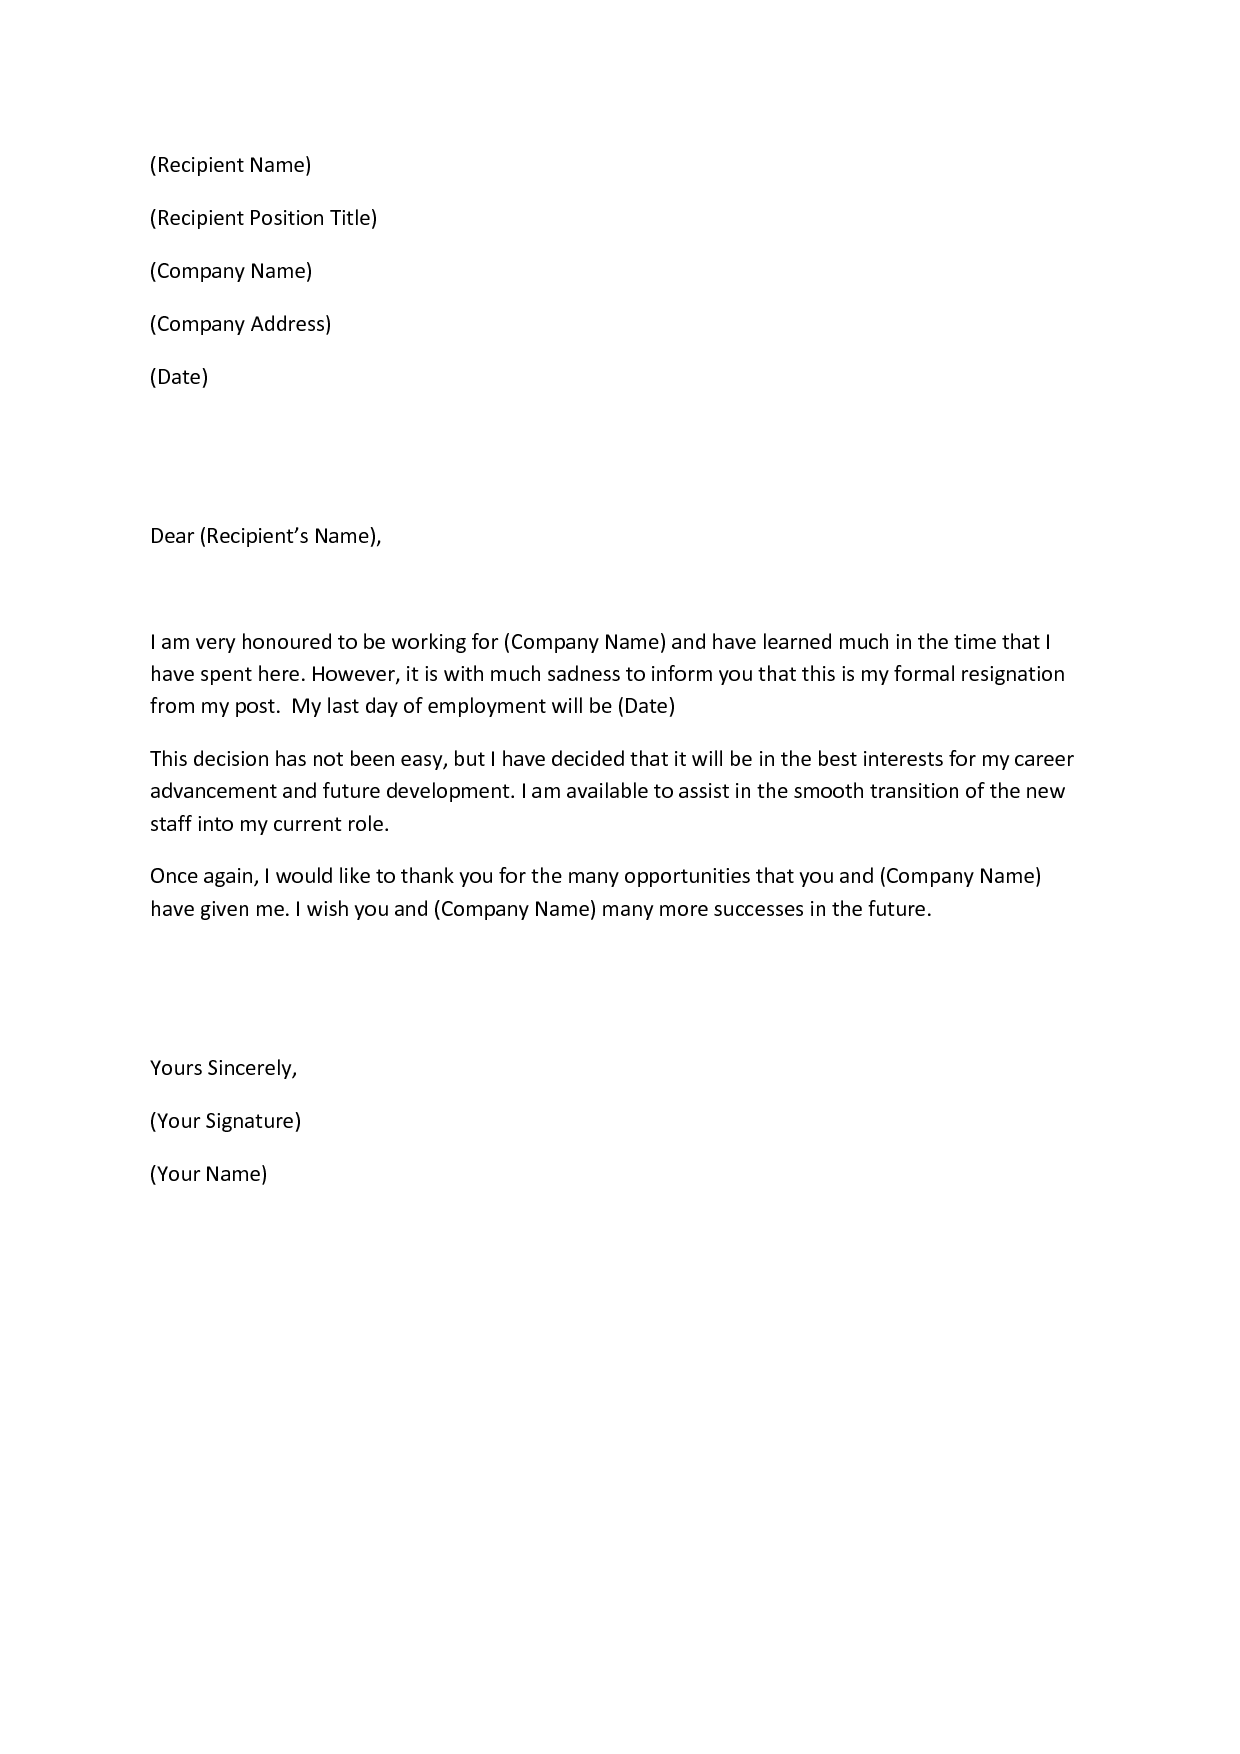 Resignation letter template in word format copy short letter short letter of resignation expocarfo Choice Image